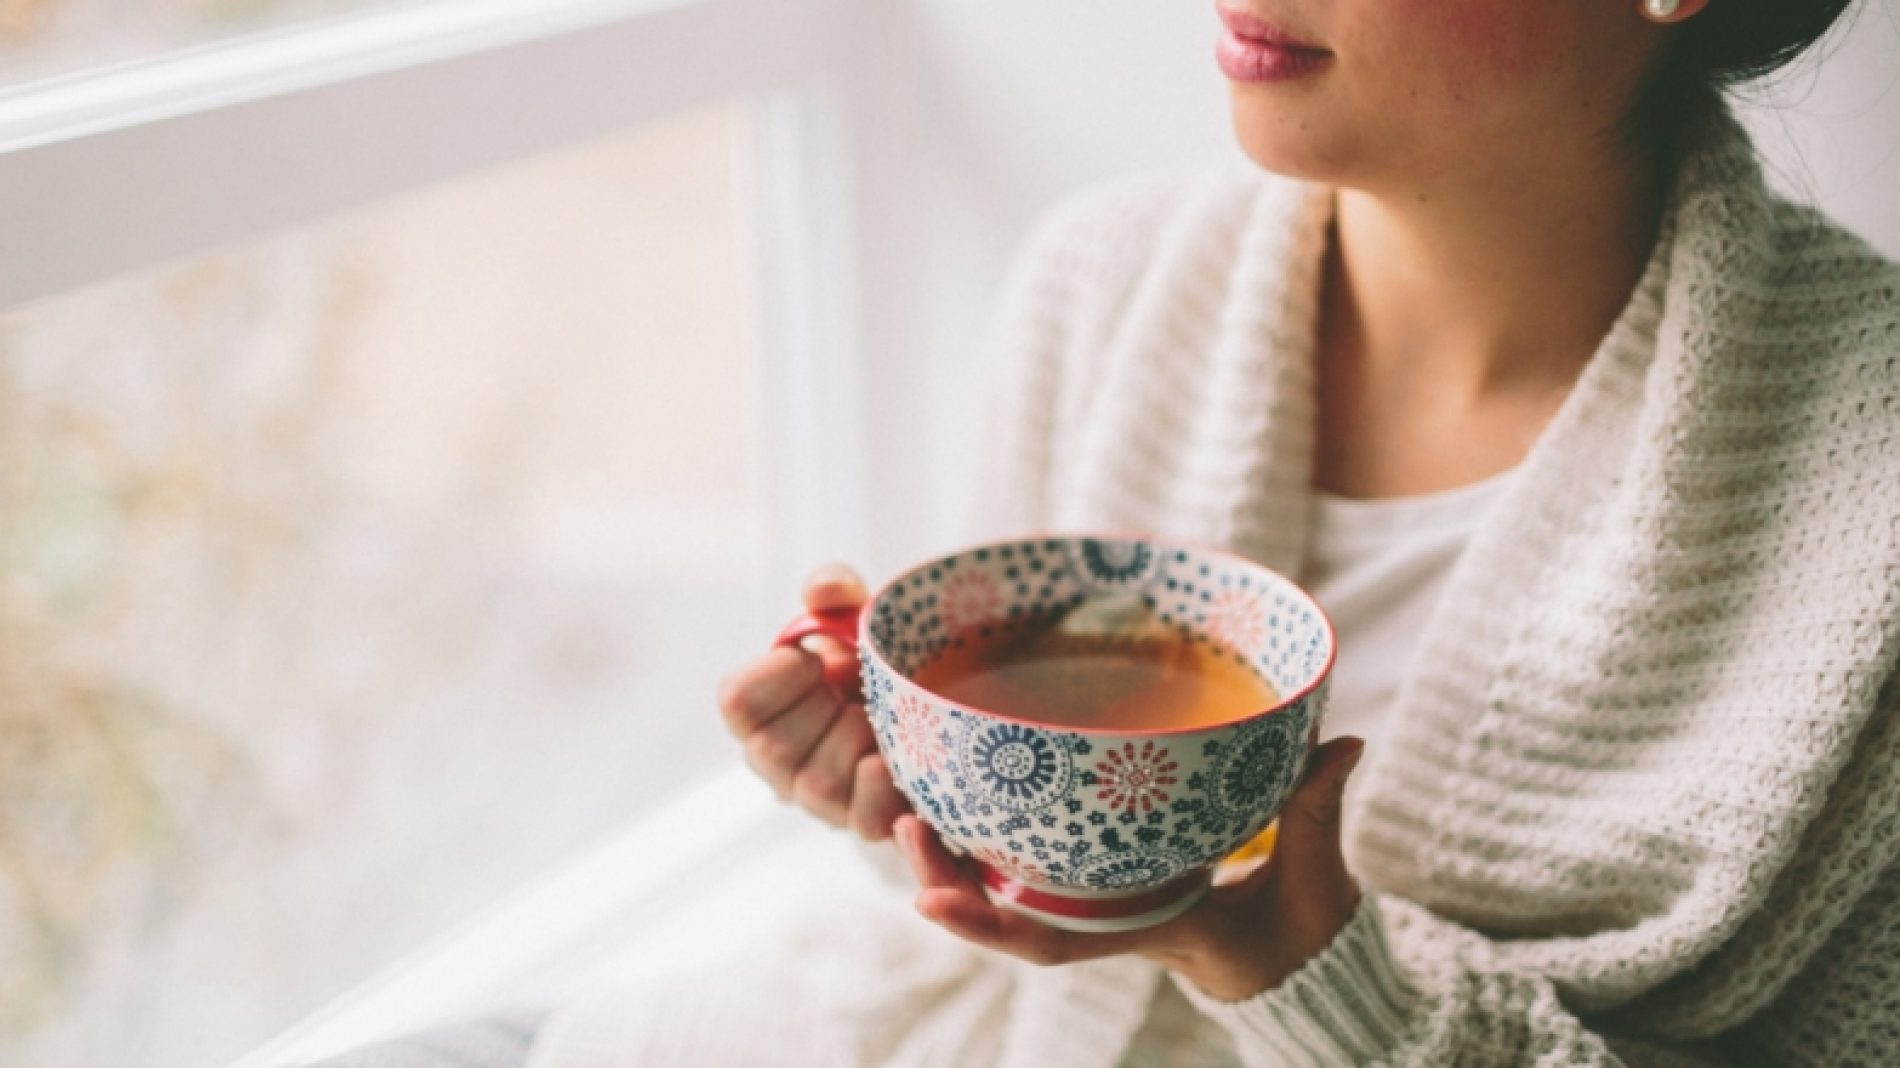 a-young-woman-drinking-tea-and-looking-out-the-window_t20_NG7N7p-Siv79T